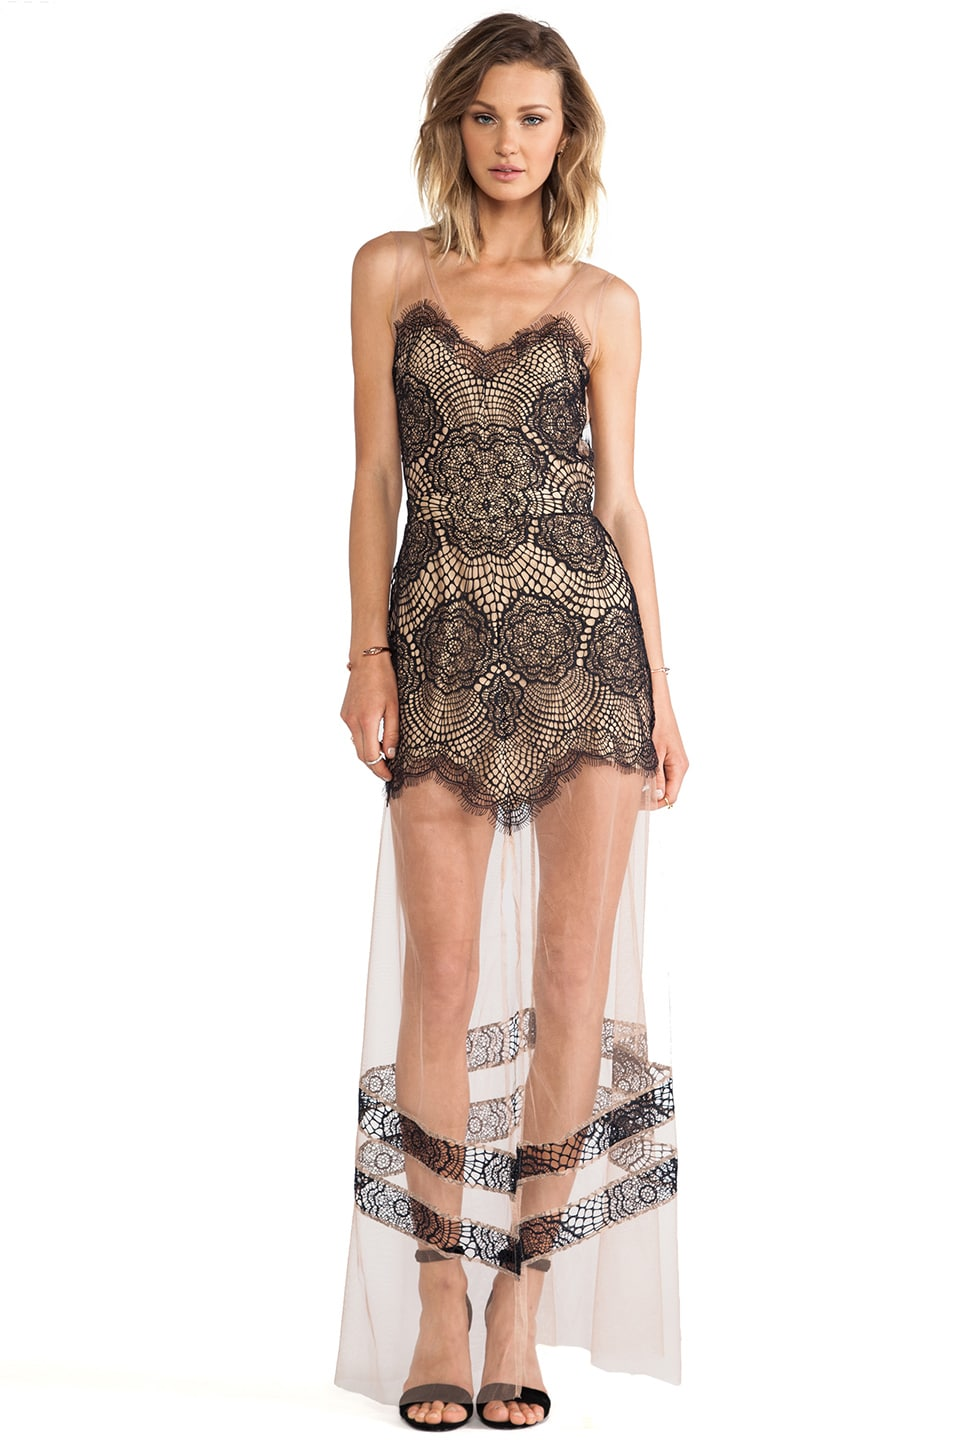 For Love & Lemons Antigua Maxi Dress in Black & Nude